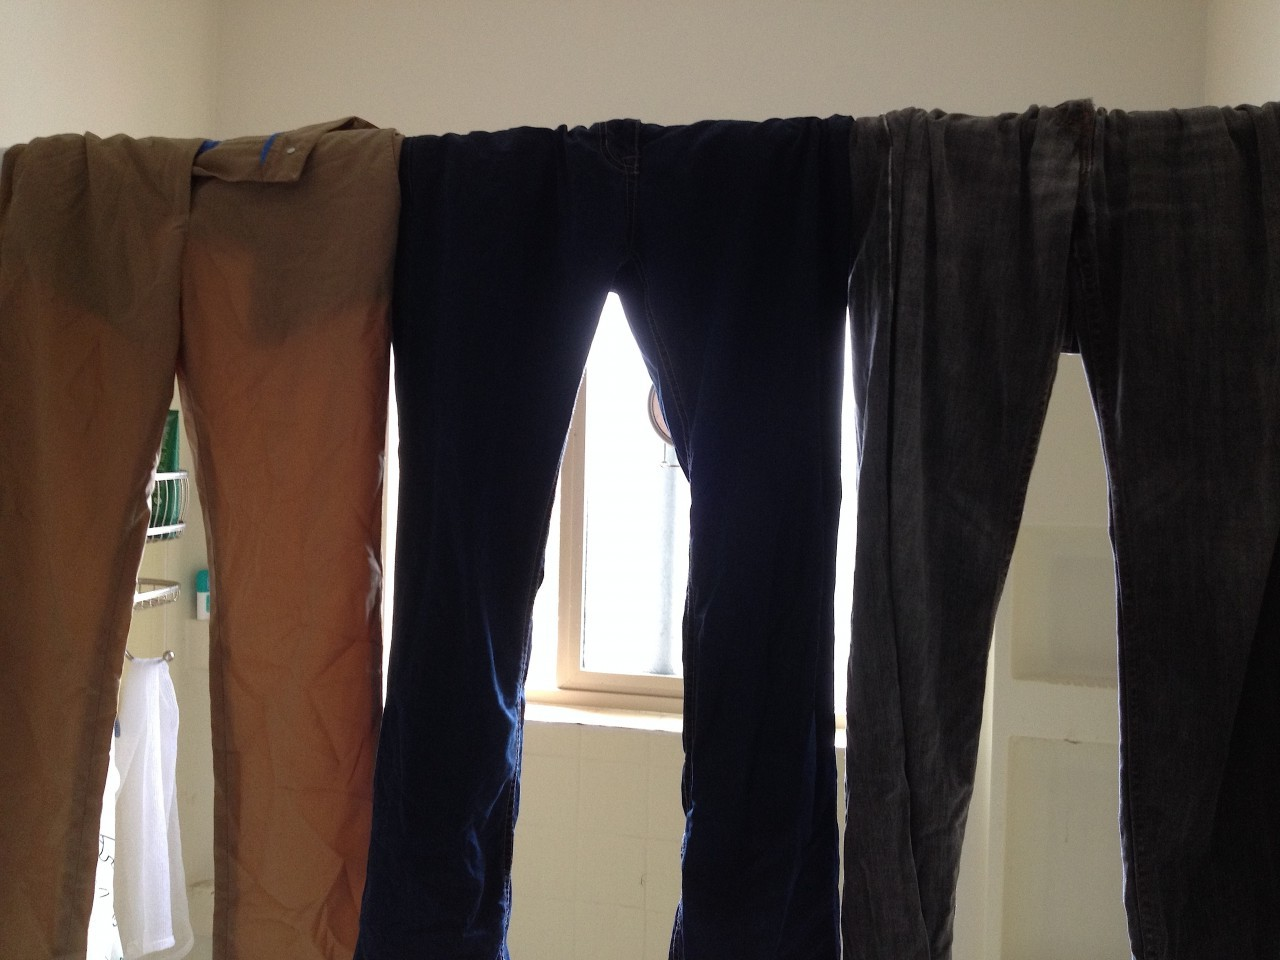 Levi's, Rohan Jeans Plus, and Bluffworks Pants drying times